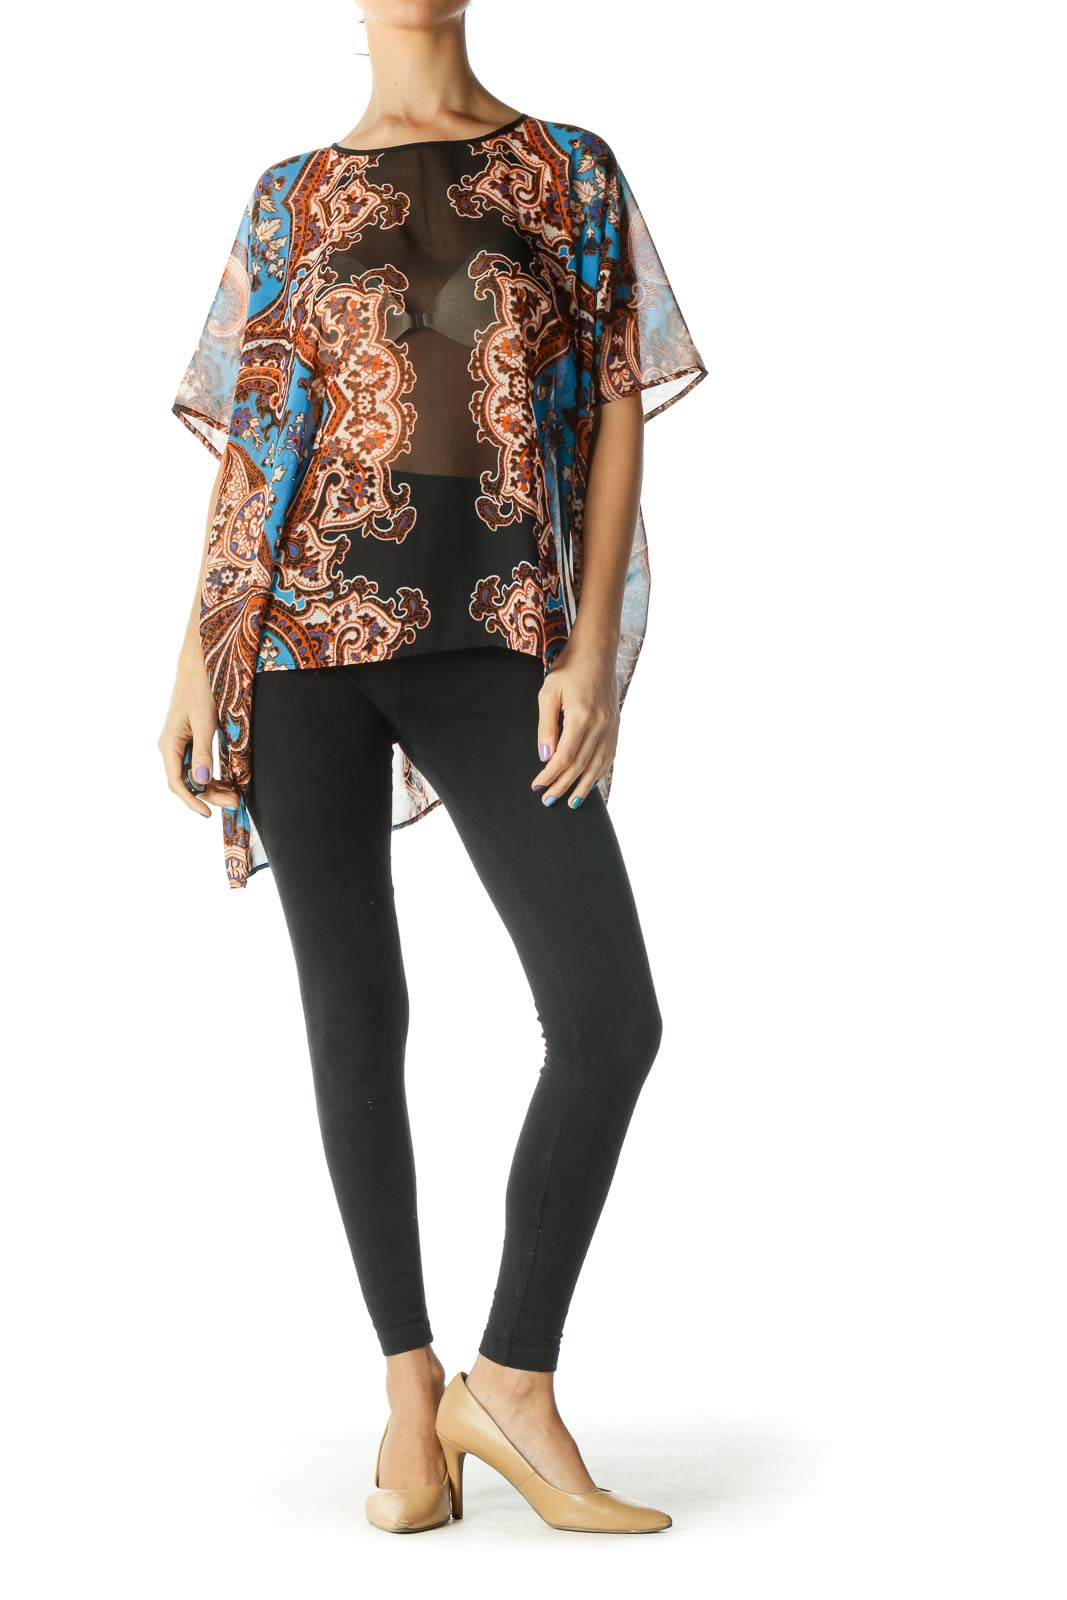 Black, Blue, and Orange See Through Floral Print Flowy Blouse